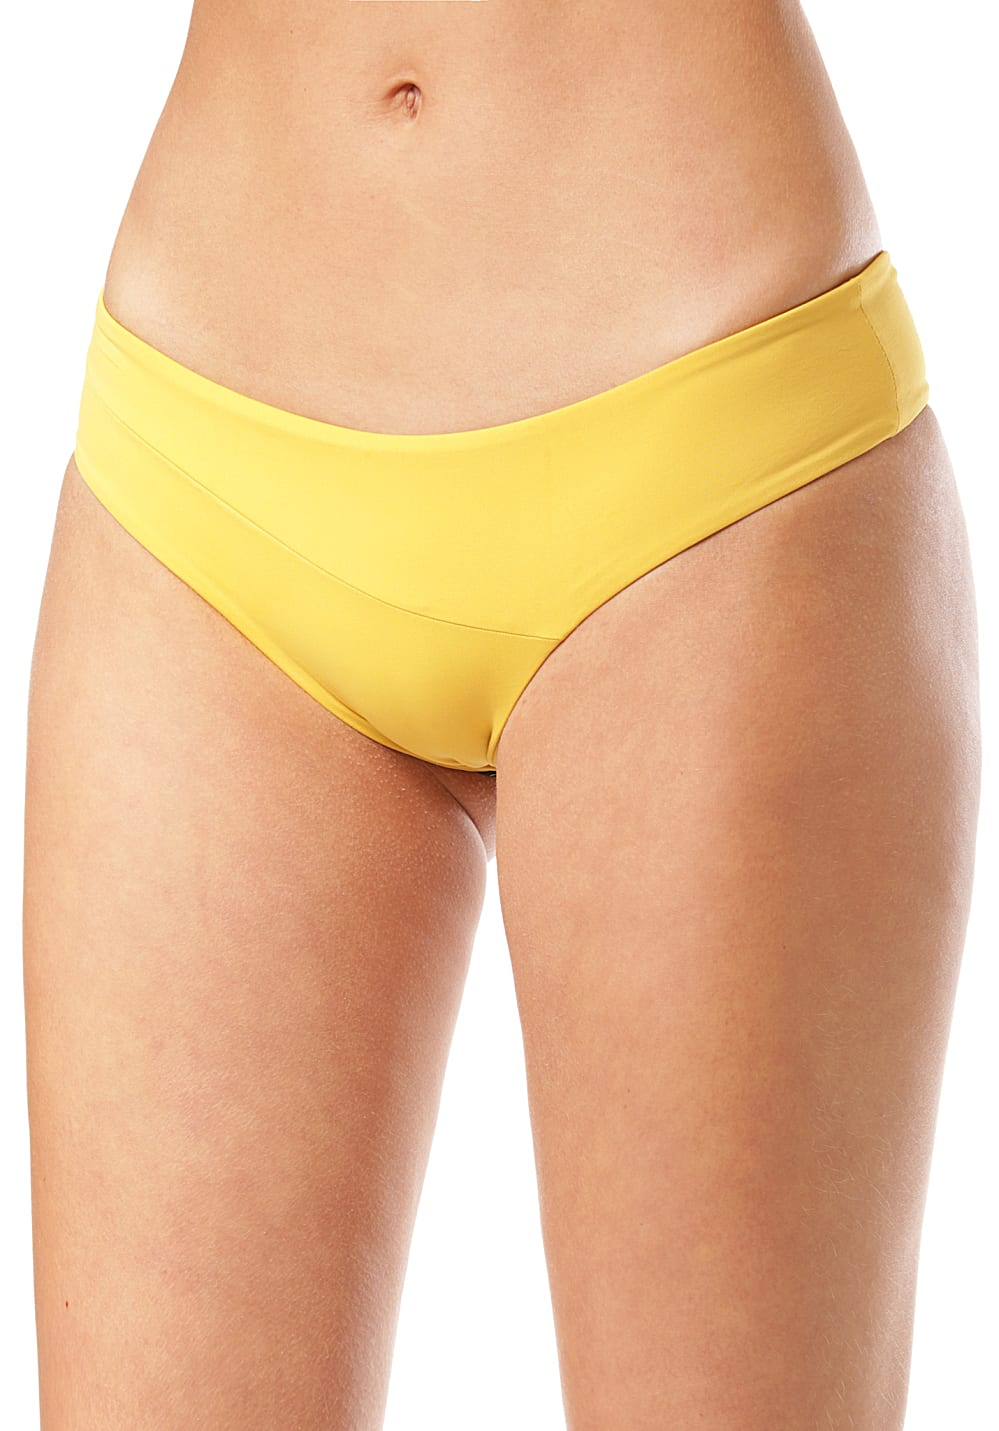 Bademode - Volcom Simply Seam Cheeky Bikini Hose für Damen Gelb  - Onlineshop Planet Sports